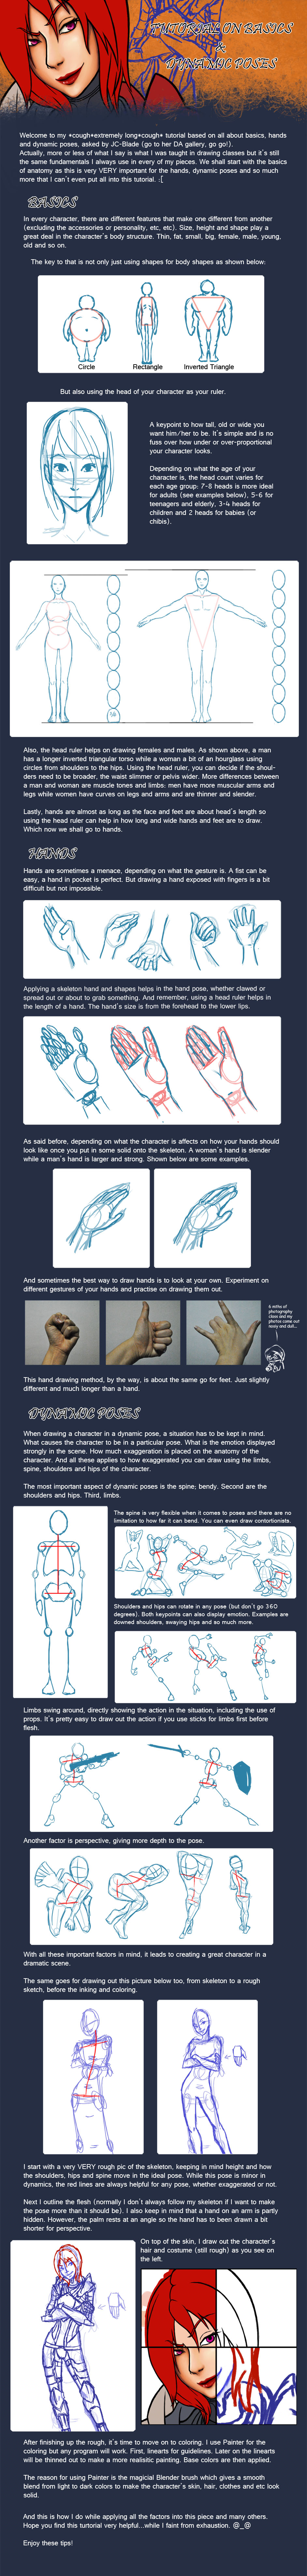 Guide to Characters and Poses by vickie-believe.deviantart.com on @deviantART